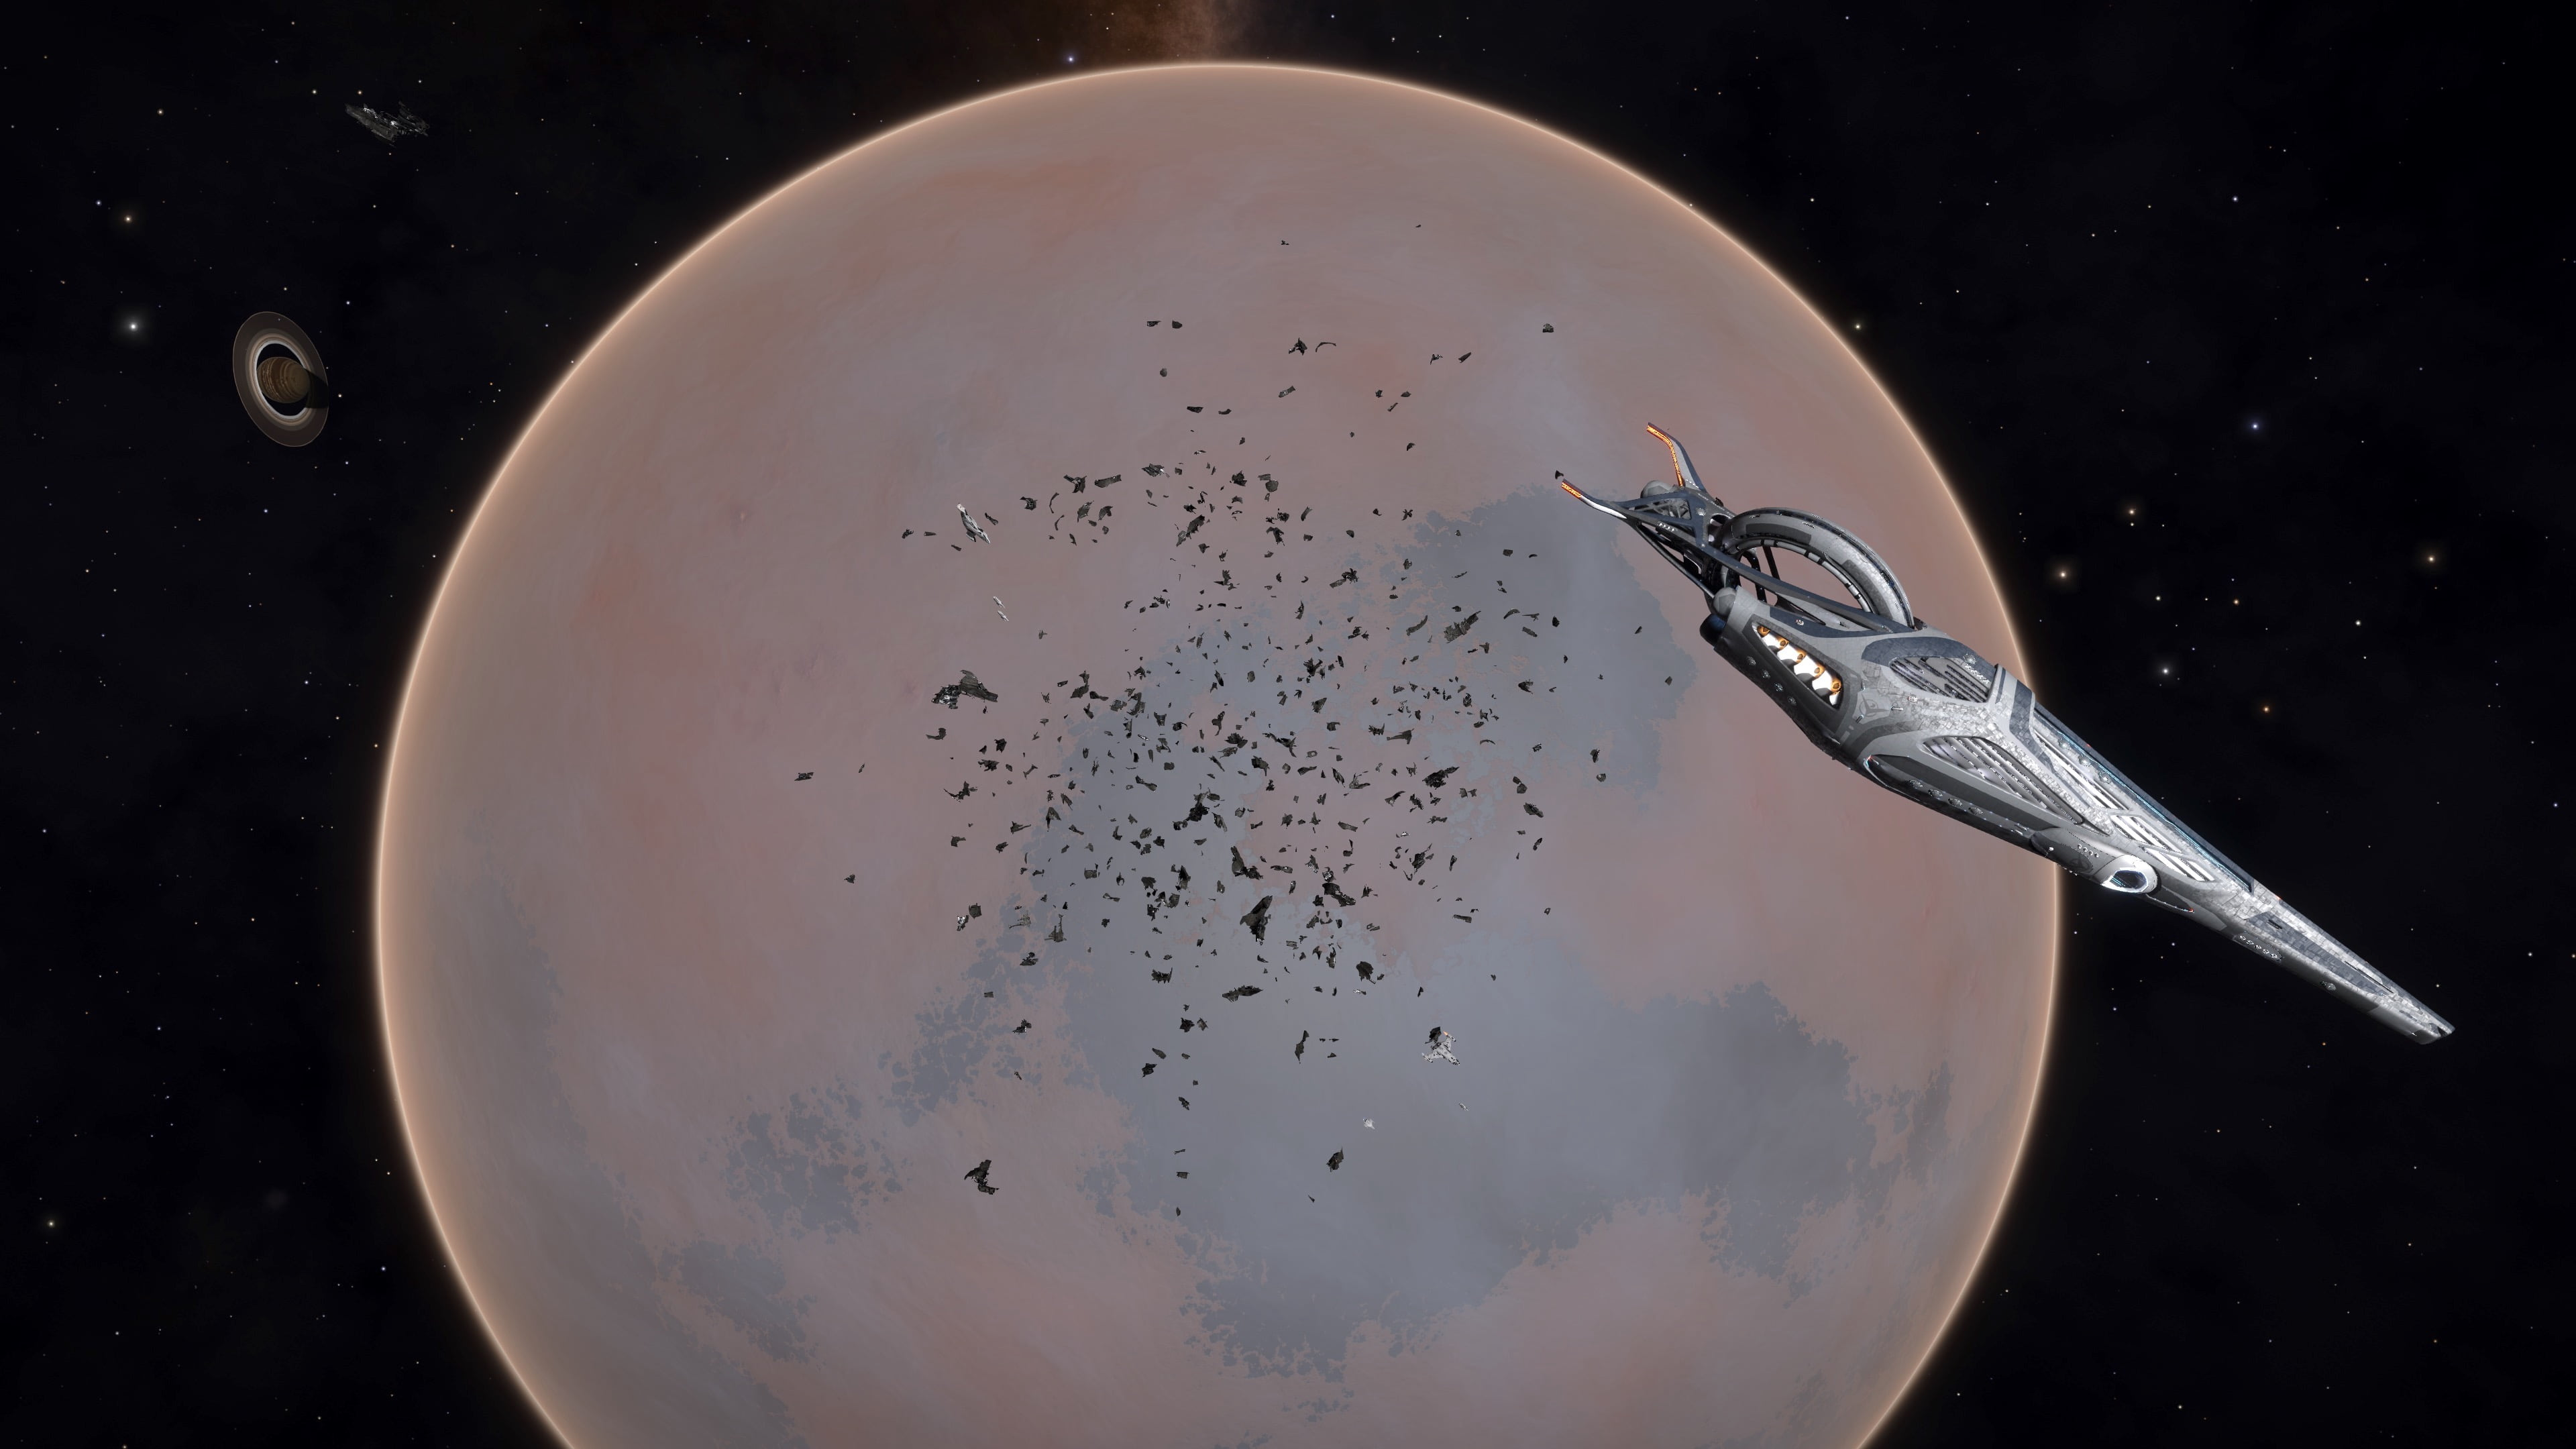 Facece 8 Capital Ship Debris